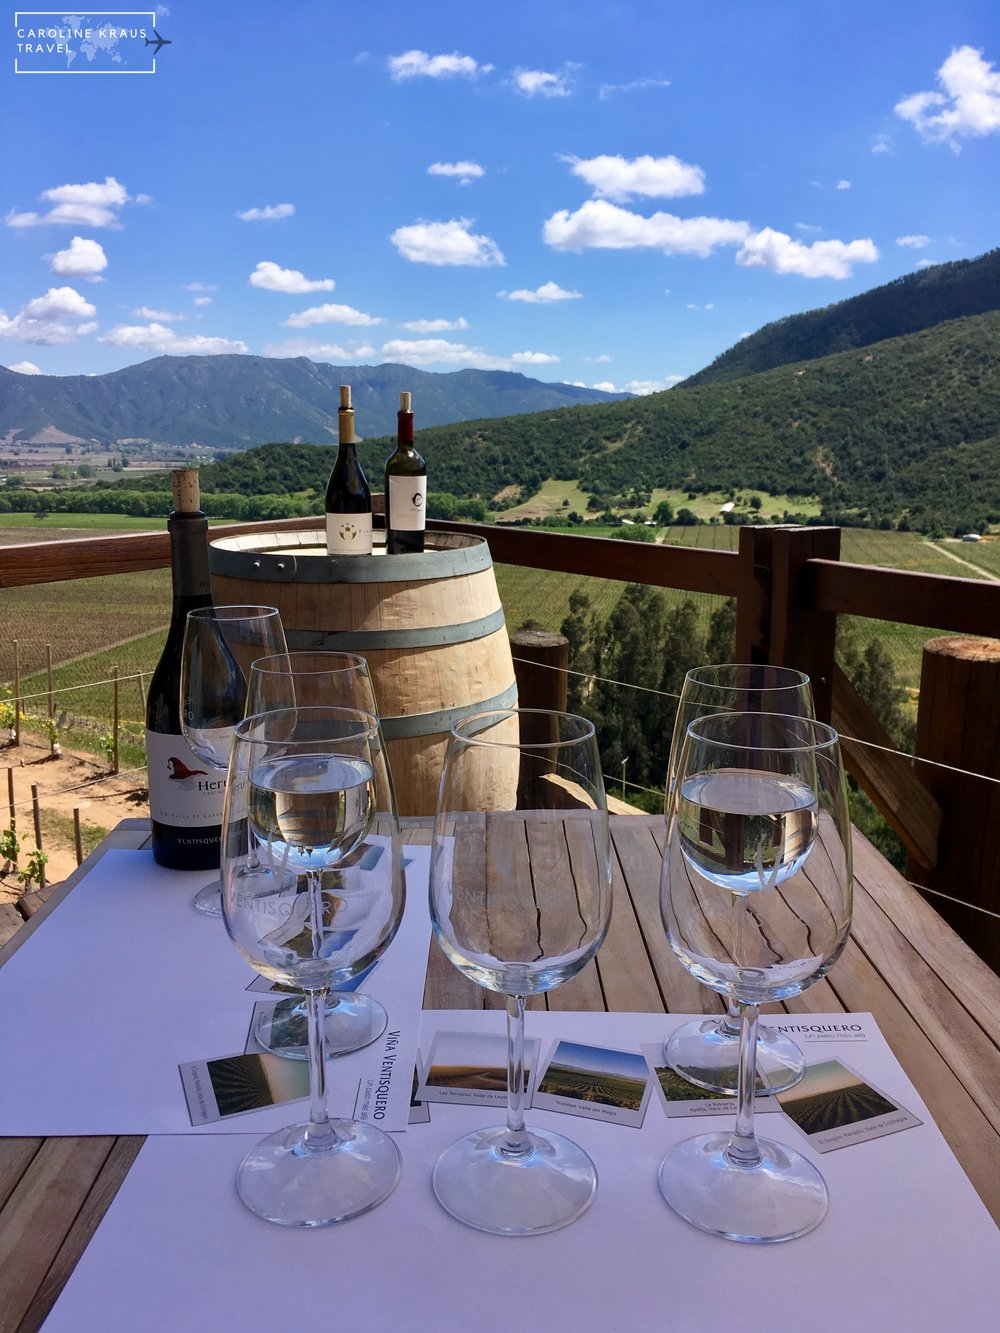 The Best Places to Eat, Drink, and Stay in the Colchagua Valley